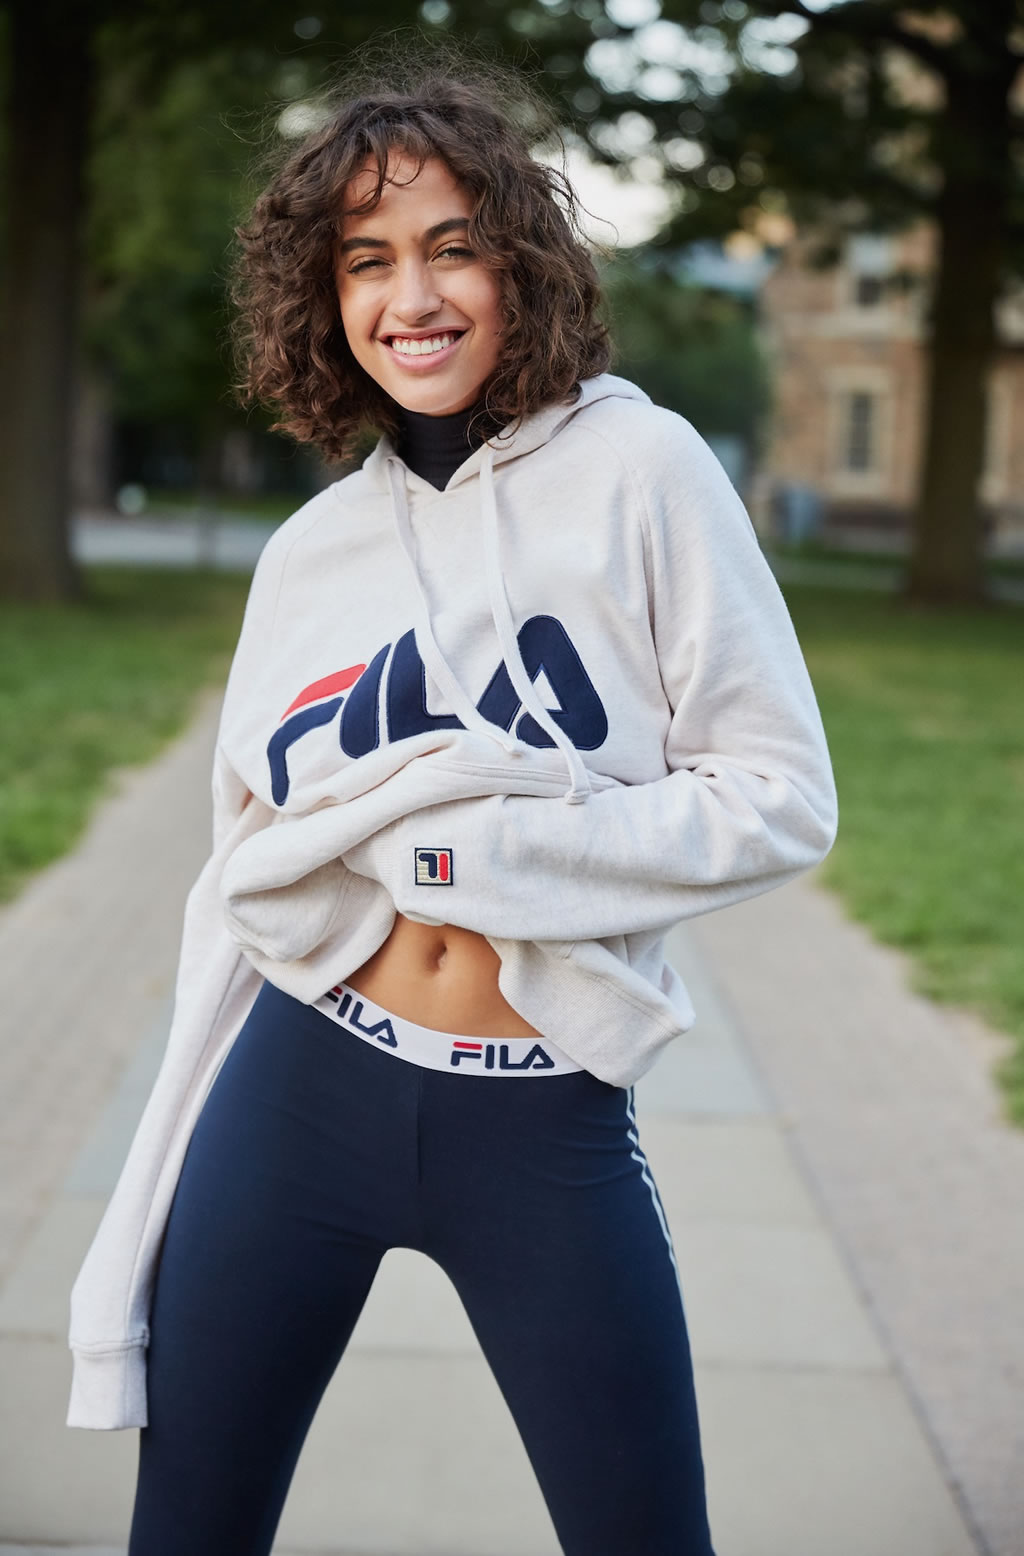 Fall '16 Apparel Line By FILA x Urban Outfitters